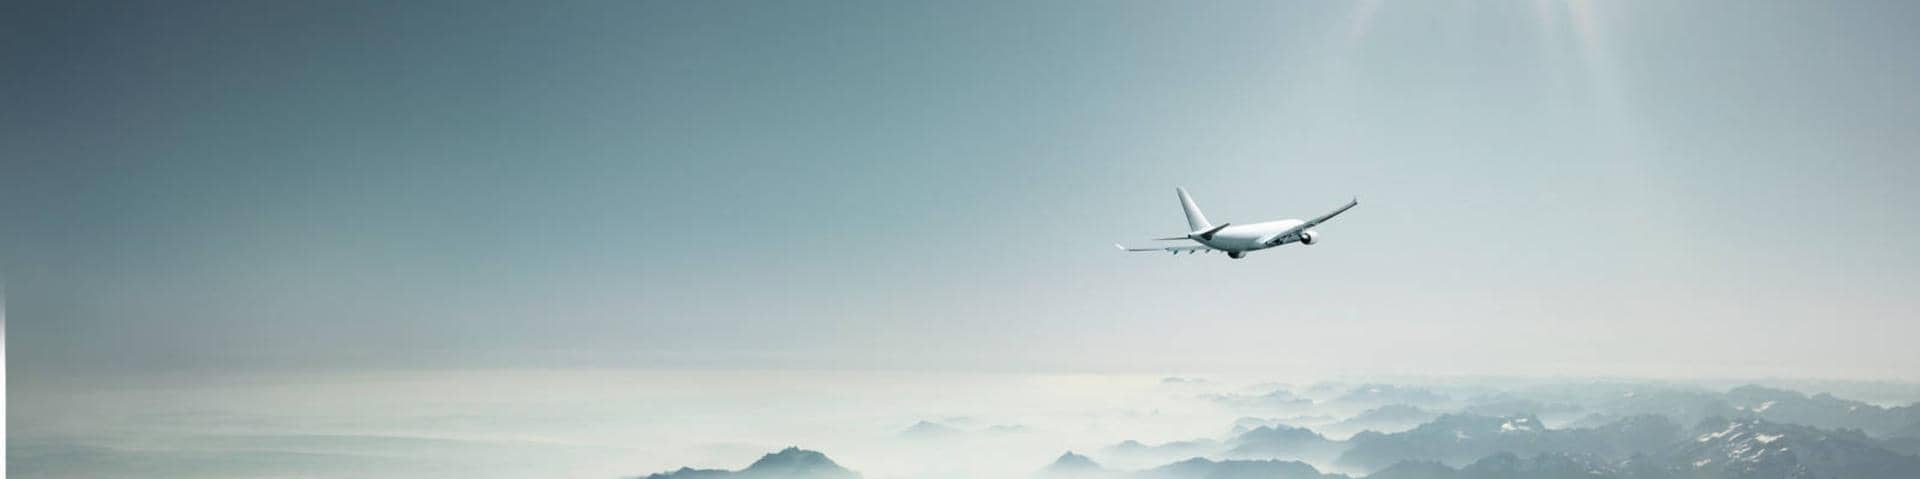 ​Plane_flying_landscape_air_freight